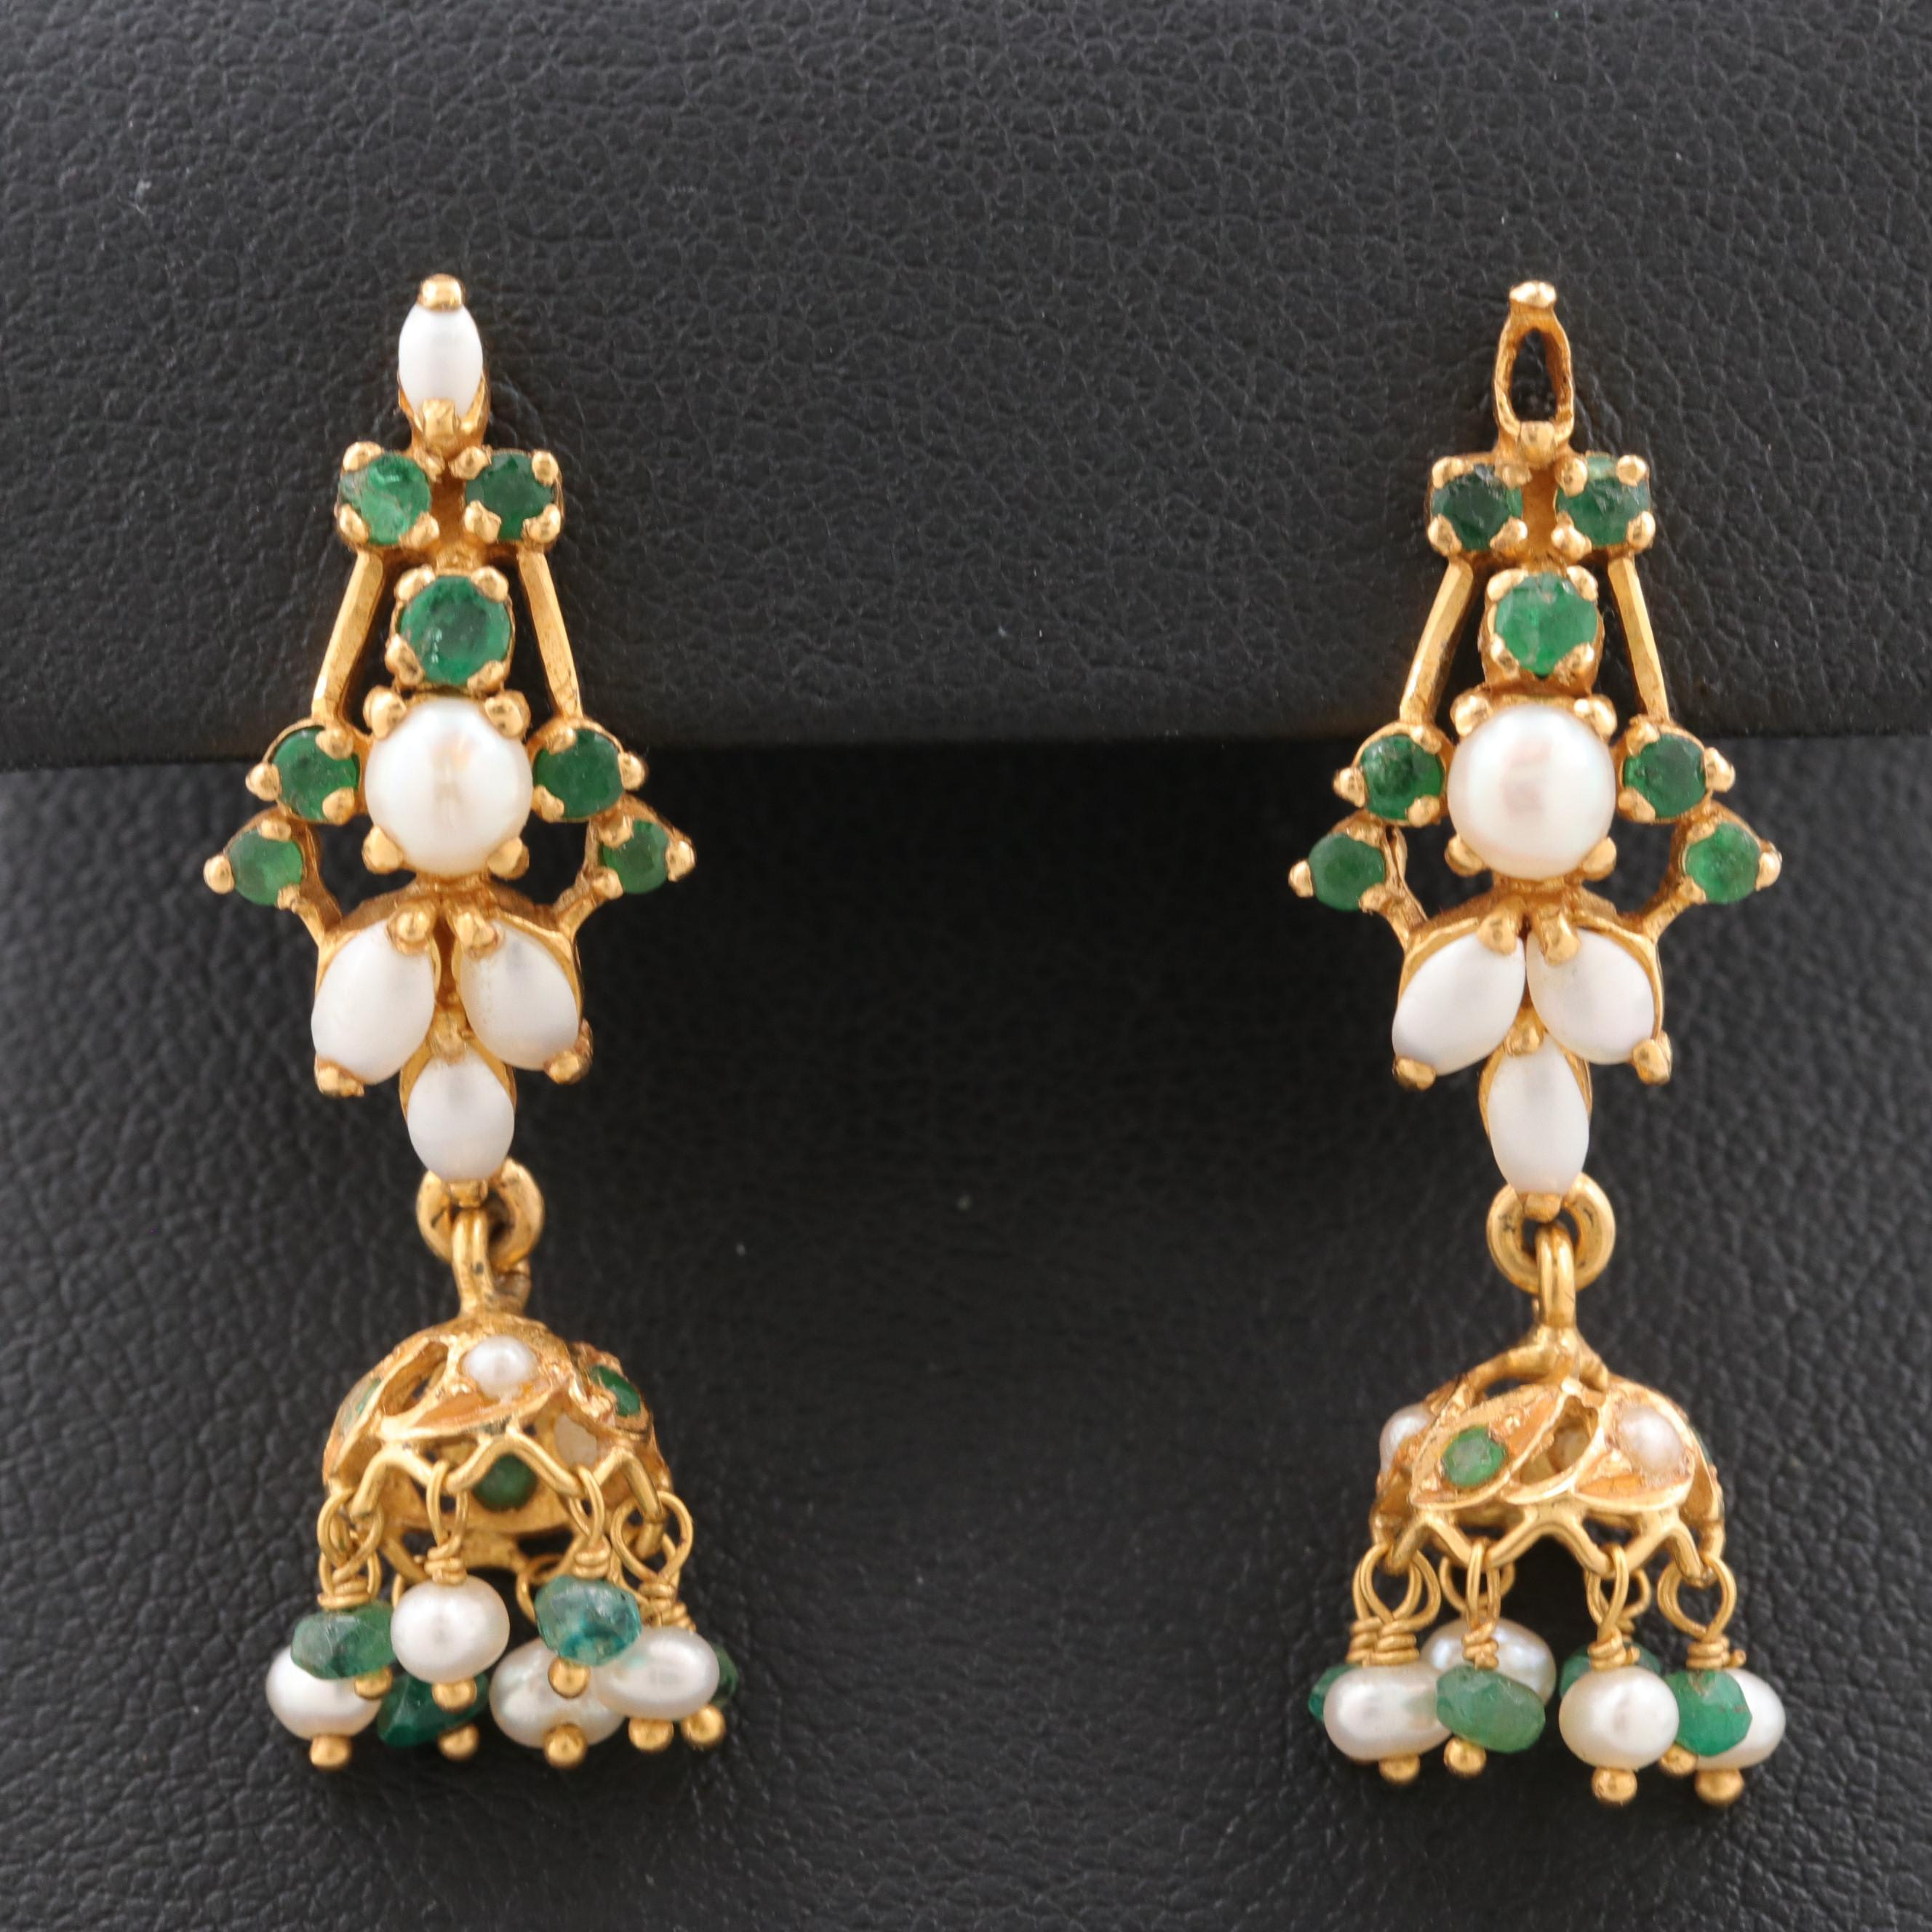 22K Yellow Gold Cultured Pearl, Mother of Pearl and Emerald Dangle Earrings